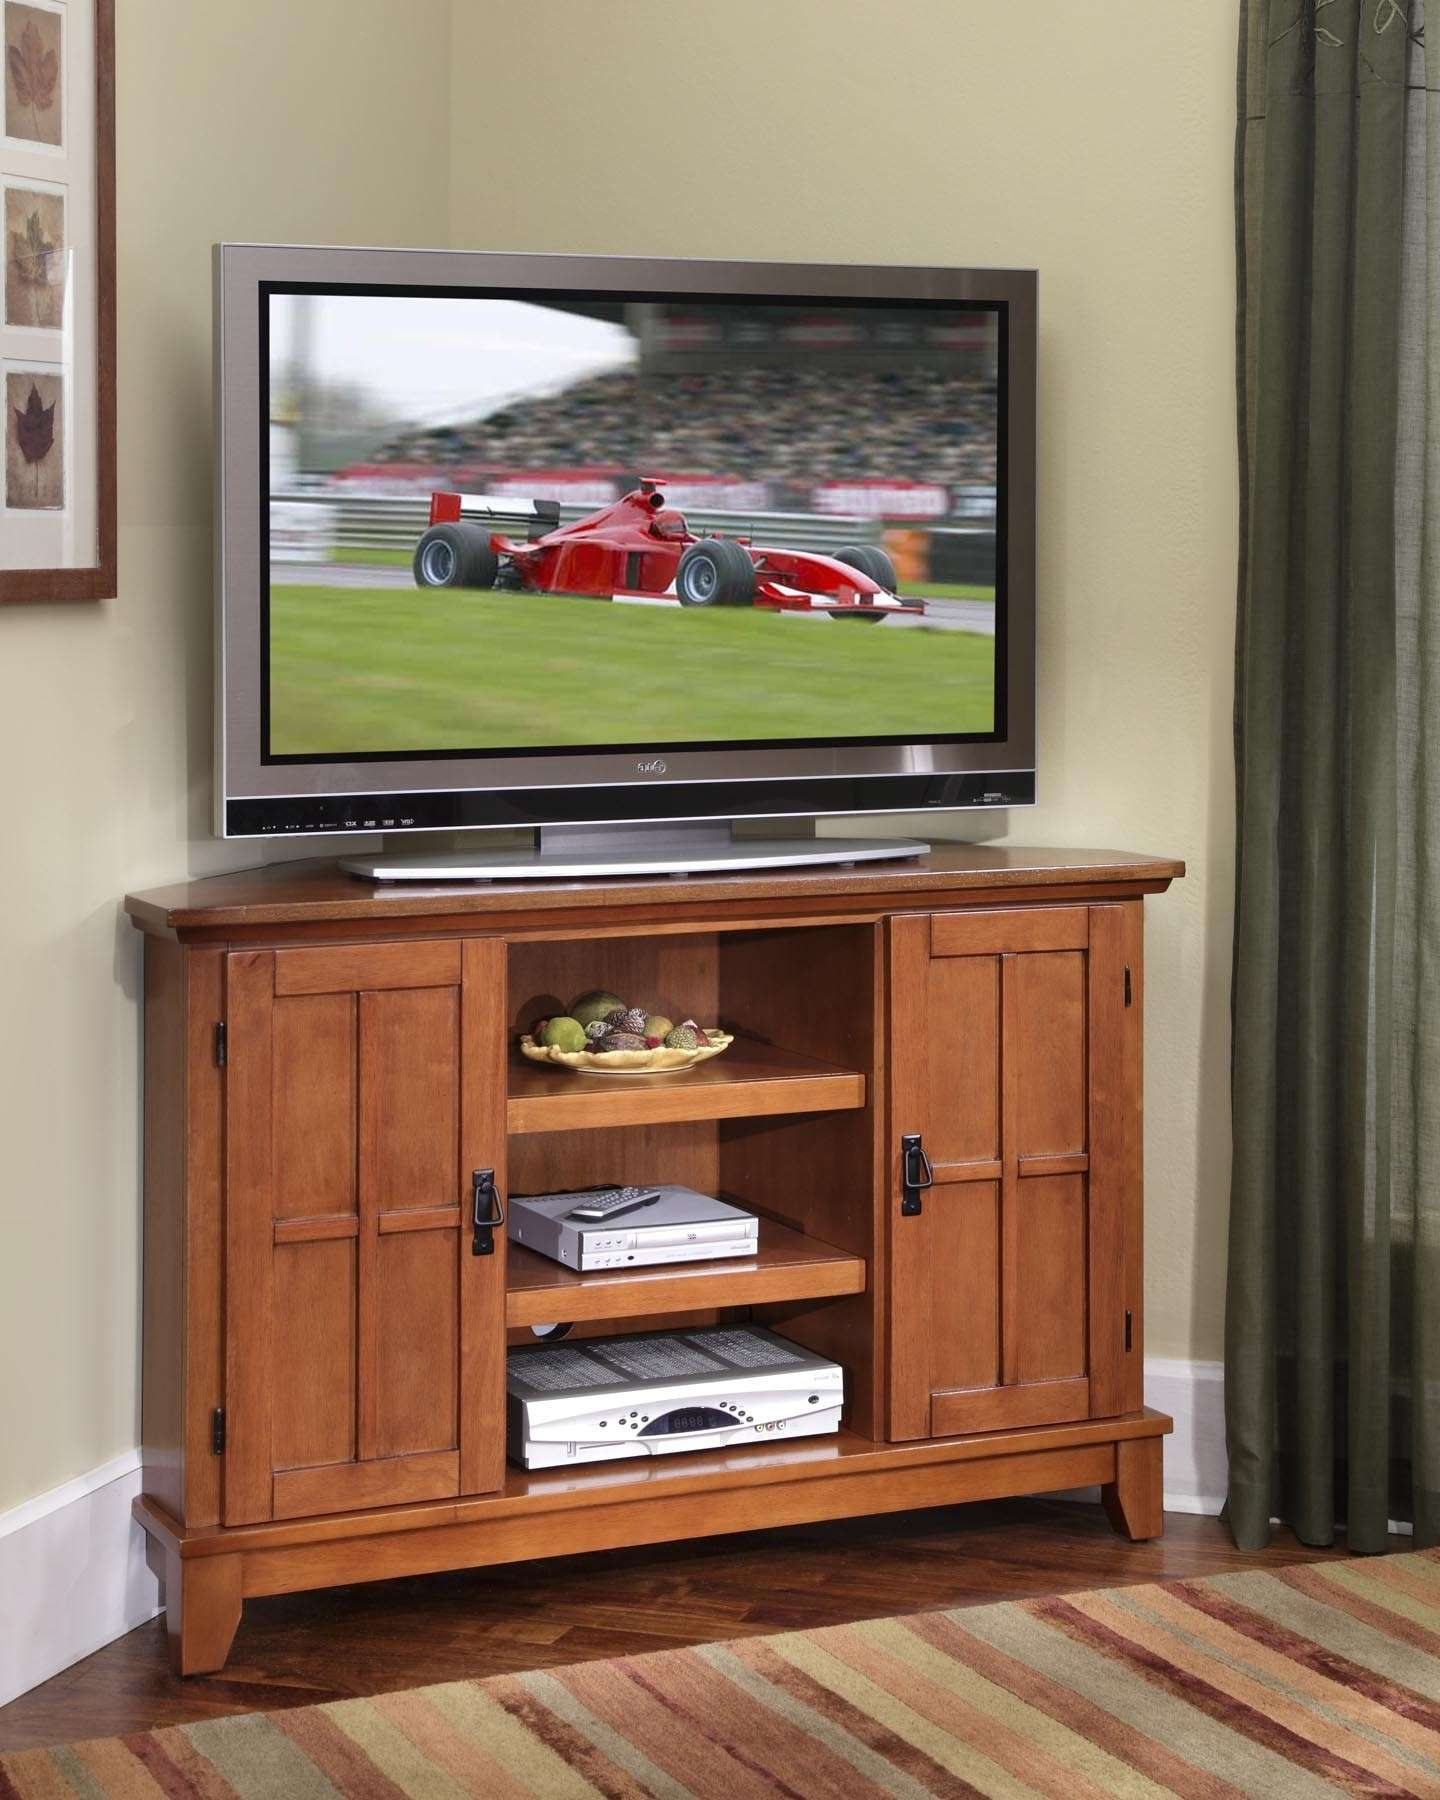 Stirring Corner Tv Stand For Inch Photo Concept Flat Screen Stands Intended For Corner Tv Cabinets For Flat Screens With Doors (View 16 of 20)